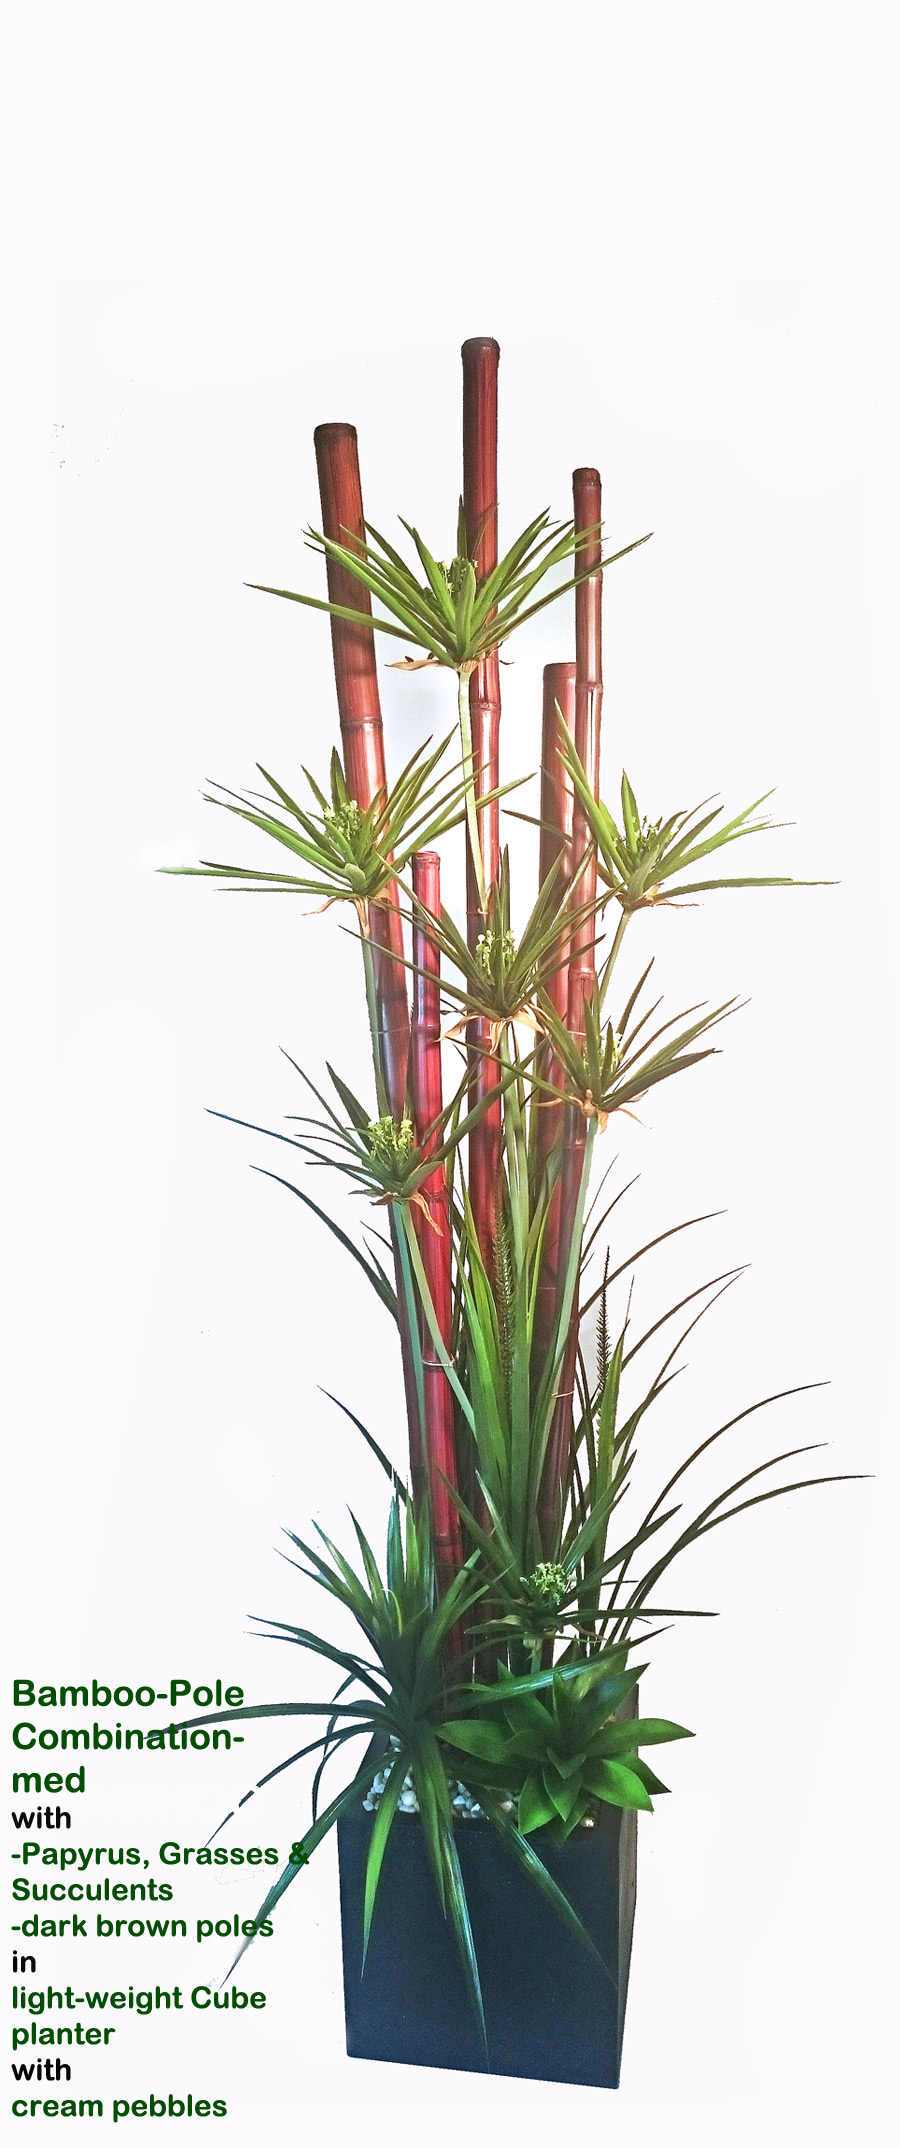 Bamboo-Pole Combination- 1.8M Papyrus in light-planter